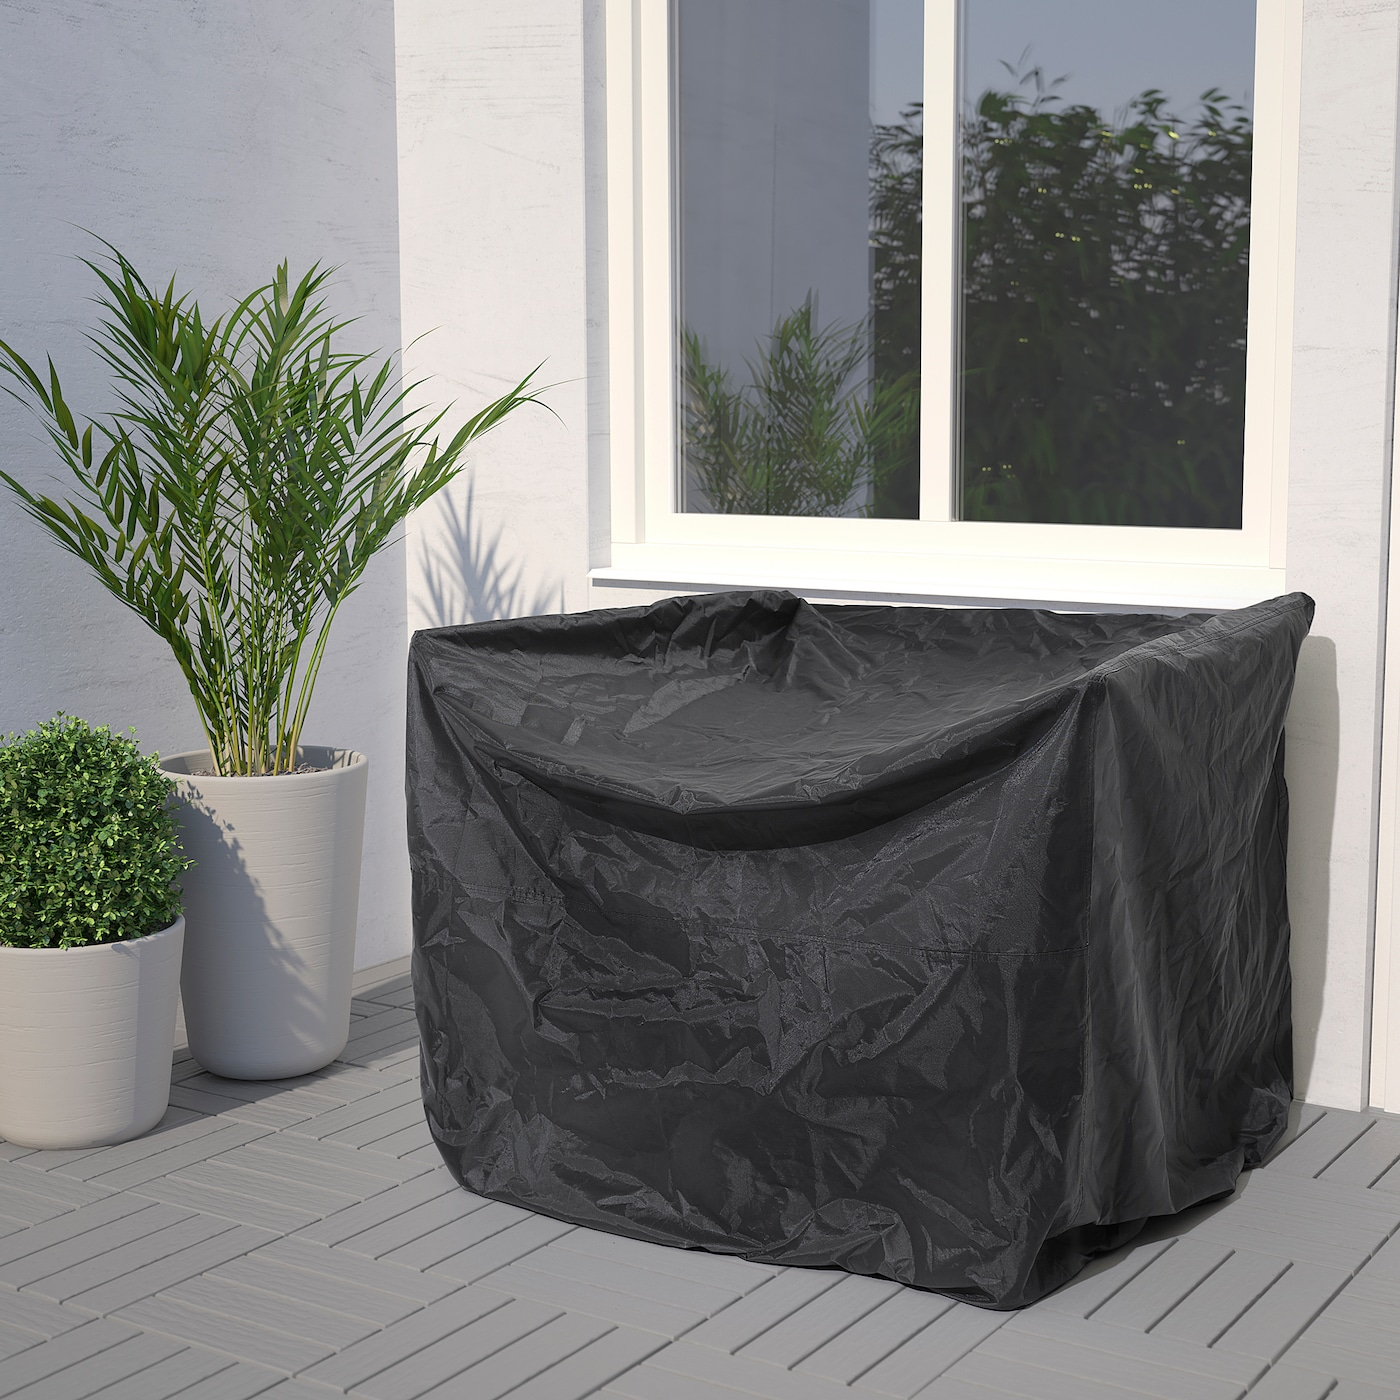 003.050.63,New in Bag IKEA TOSTERO COVER FOR GRILL,BLACK 28 3//8 x 20/""